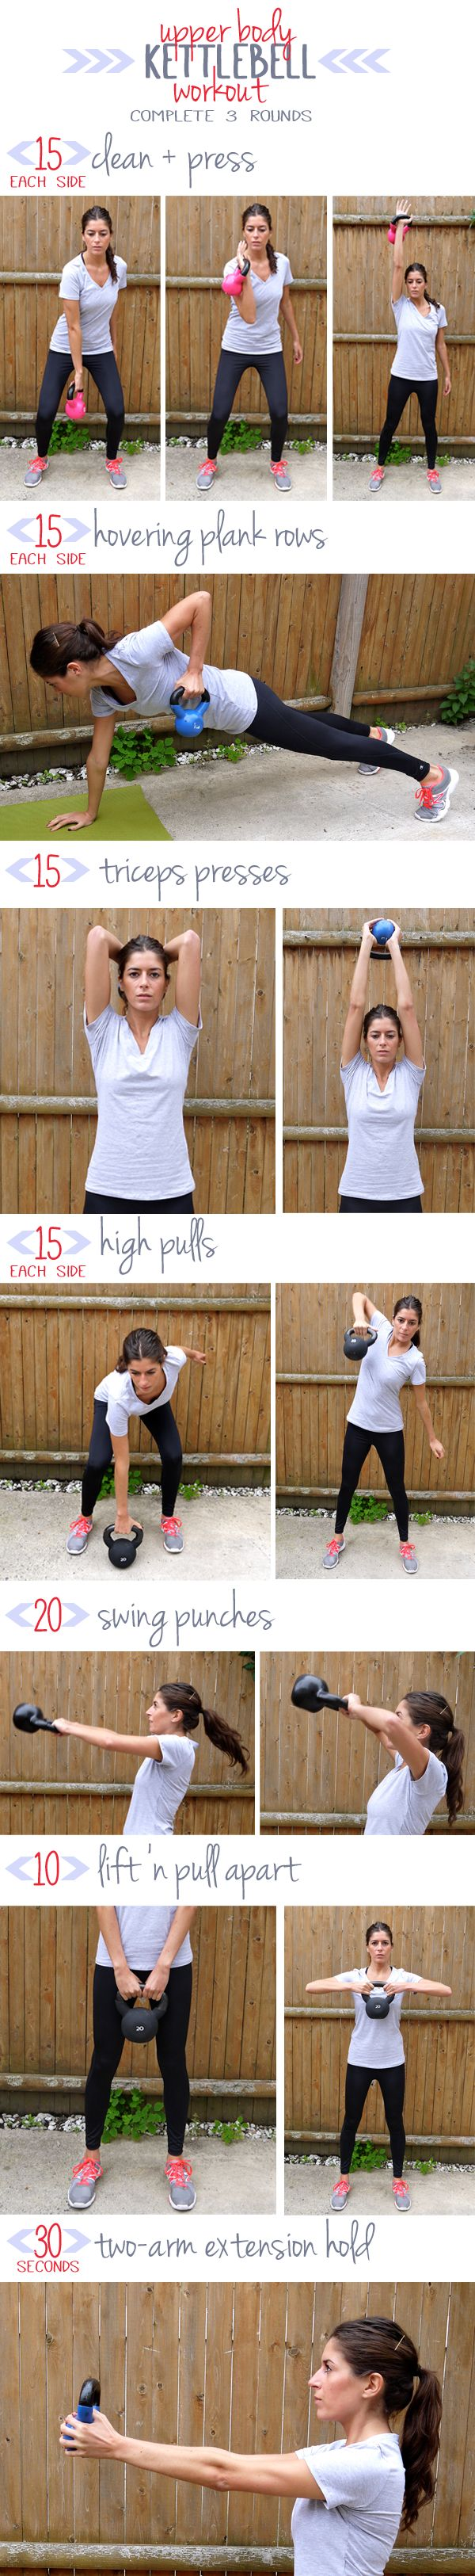 Upper Body Kettlebell Workout -- targets shoulders, upper back, chest and arms.    ps. love this girl's blog! tons of great and practical workouts.